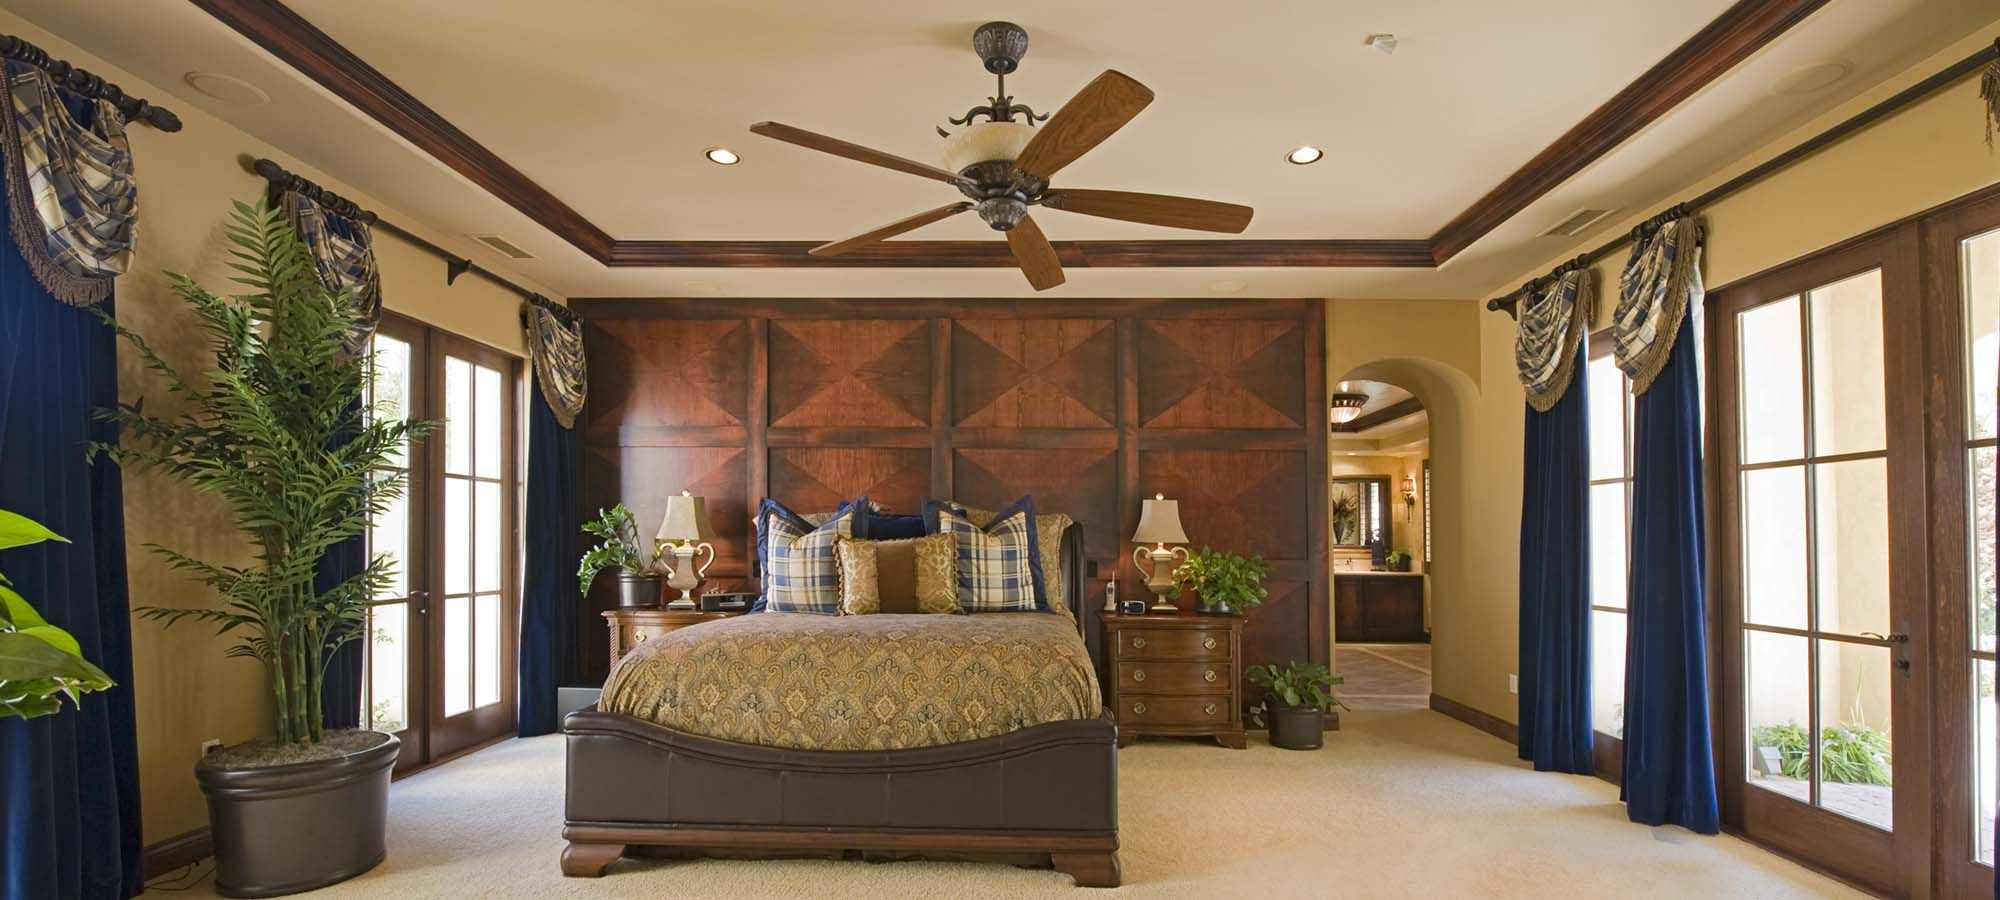 Check Out Our Page On Ceiling Fans And Energy Savings  The